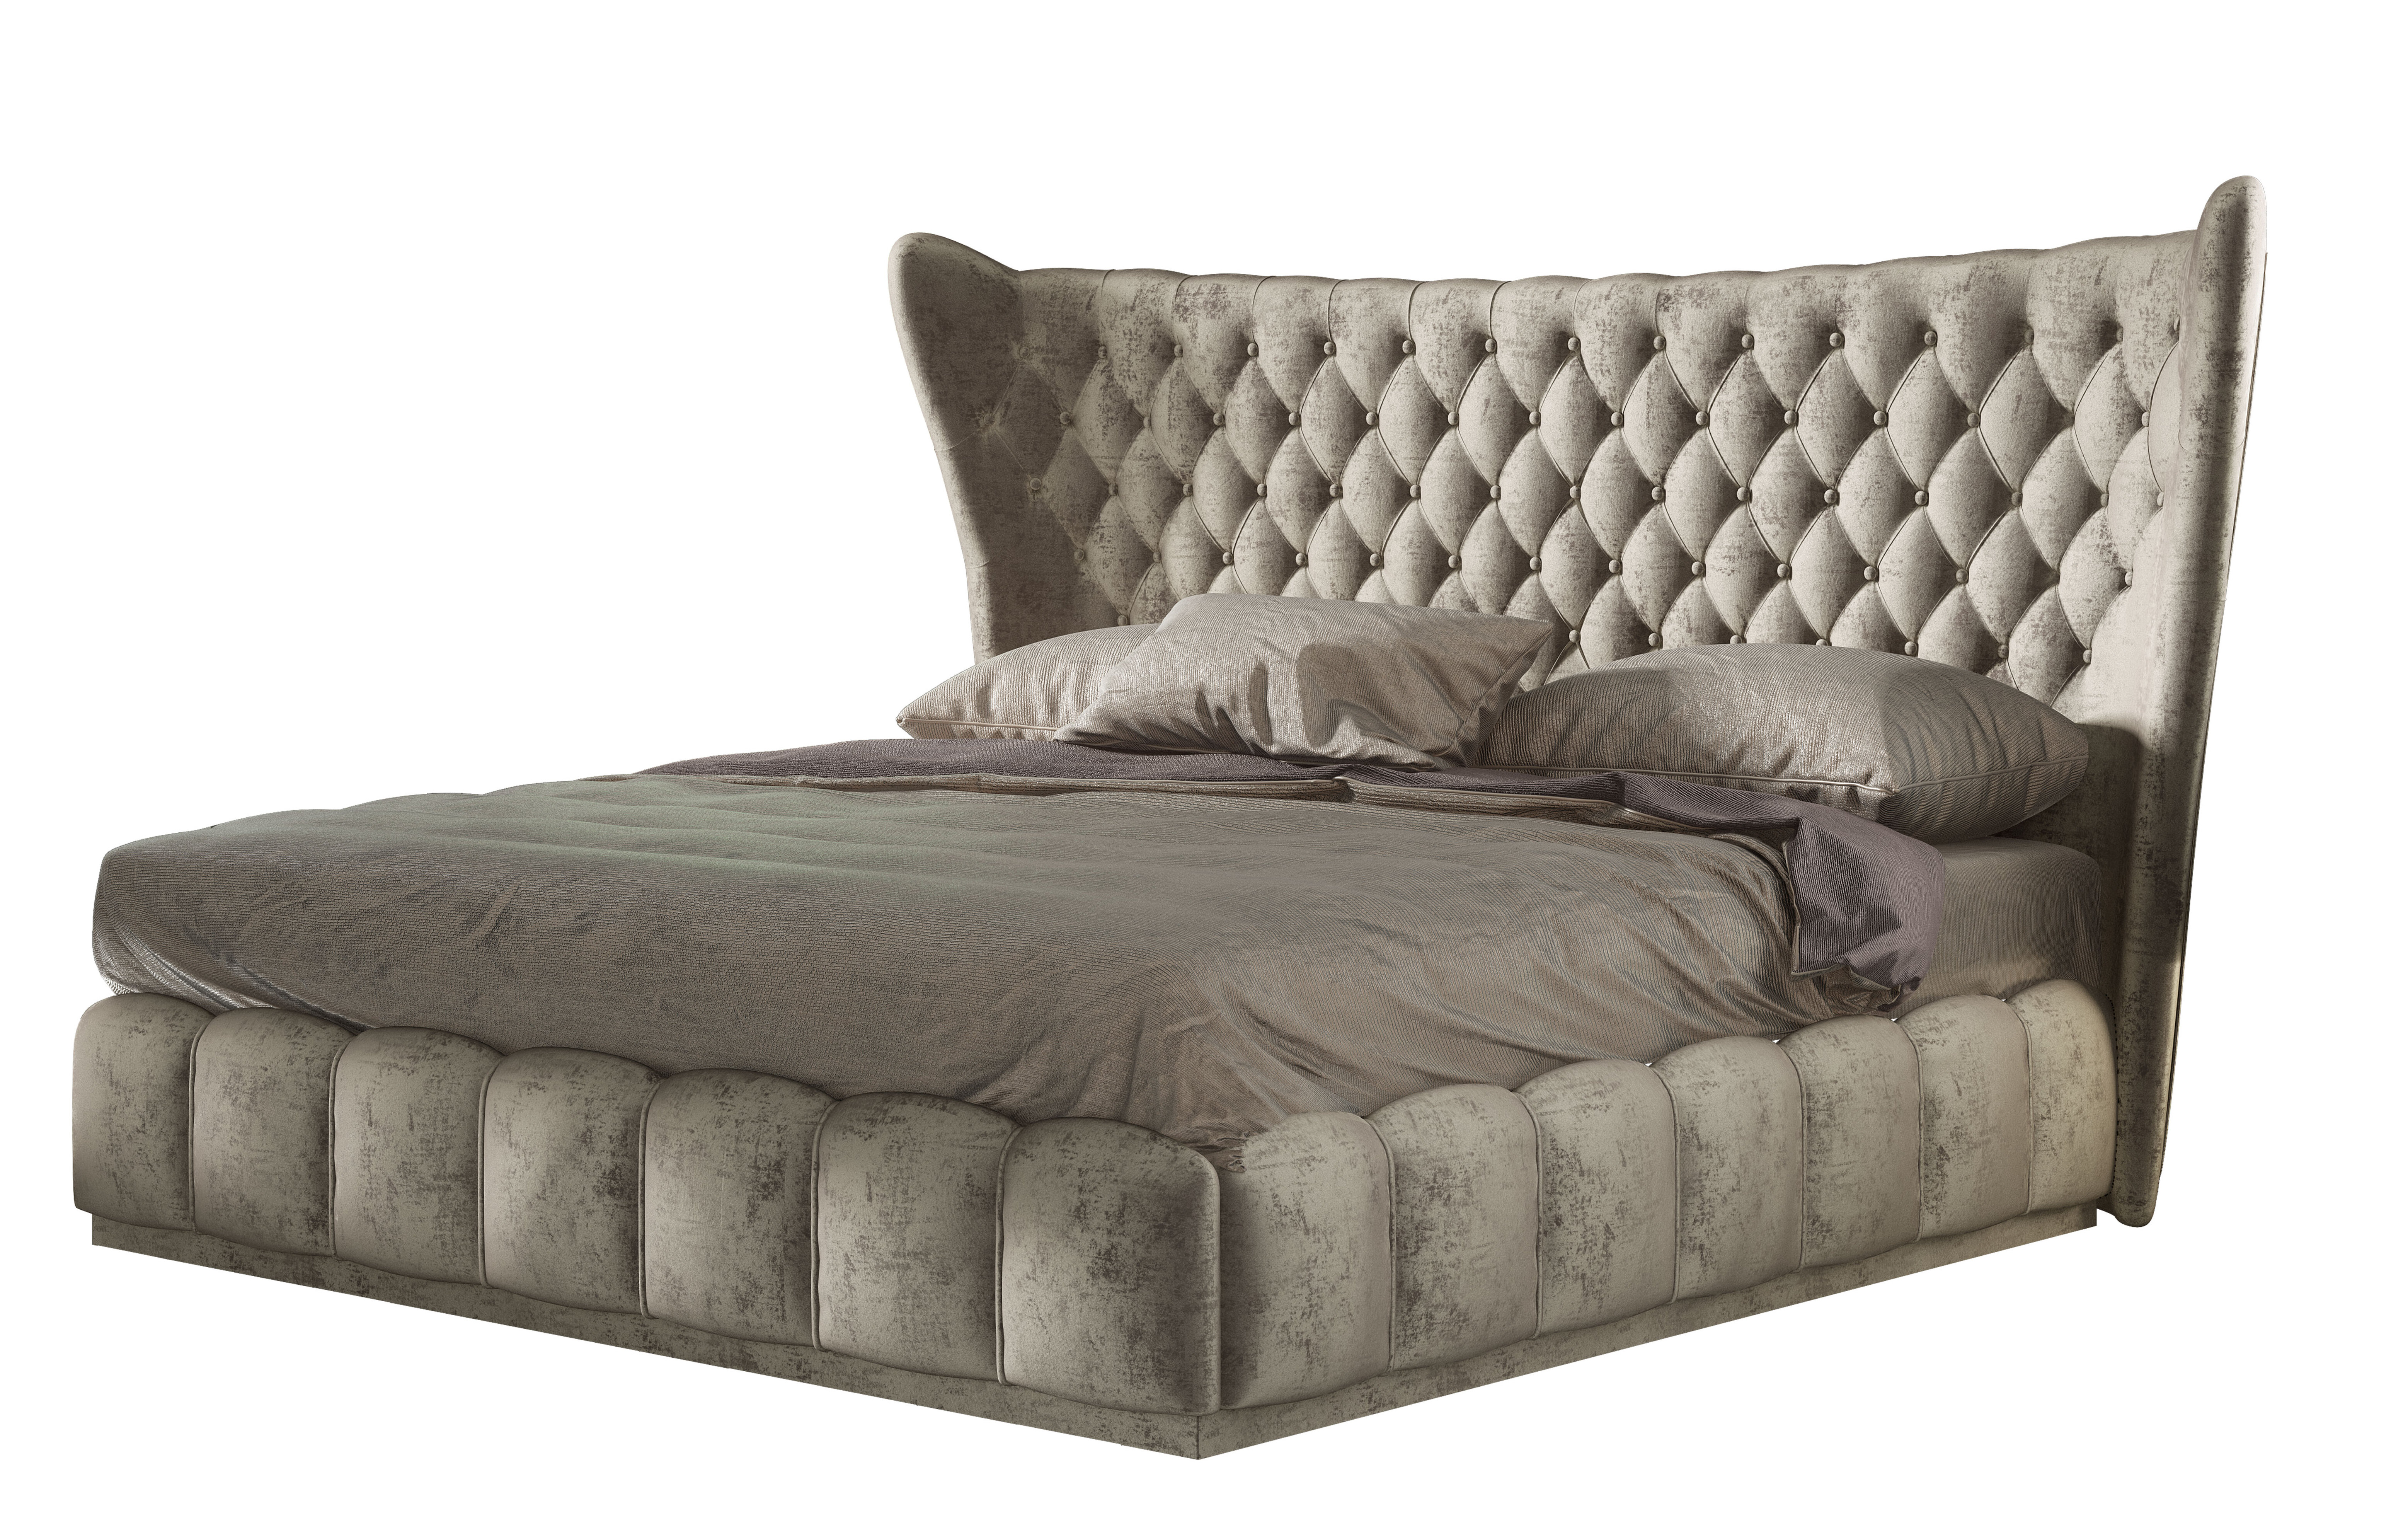 Mercer41 Longville Bedroom Queen Upholstered Platform Bed Wayfair